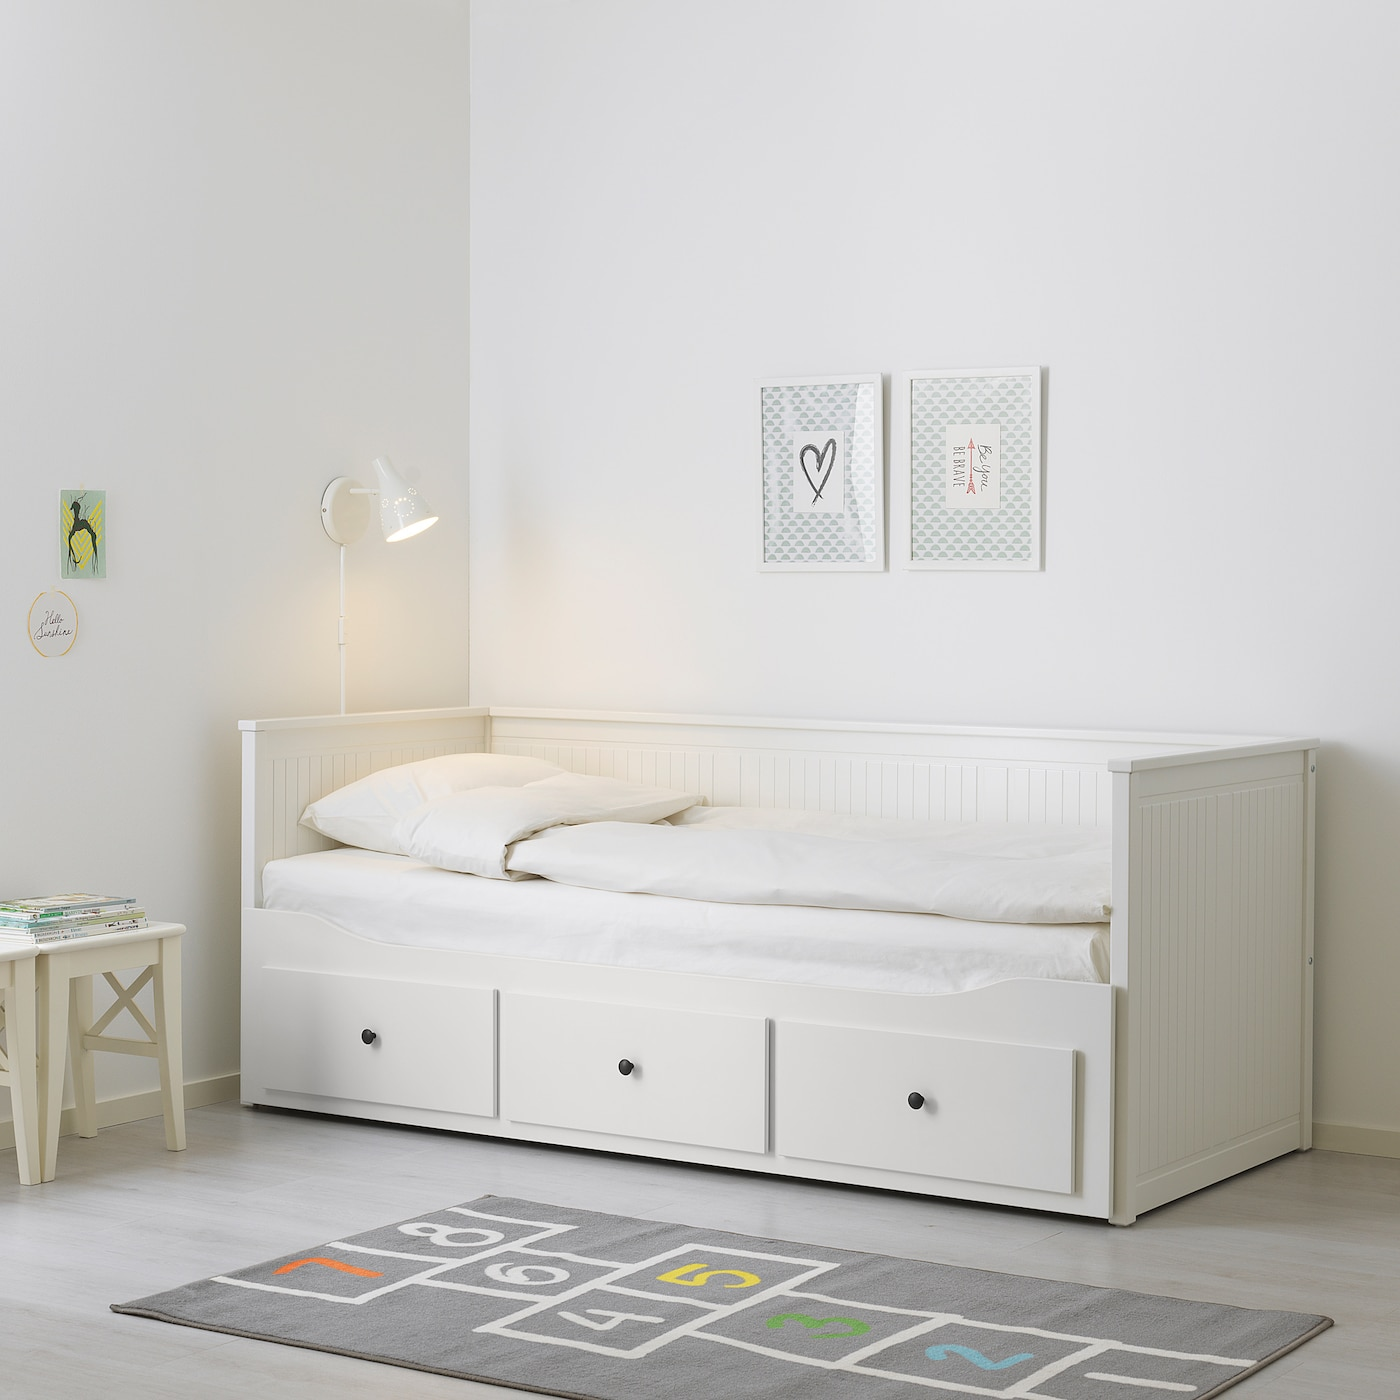 - HEMNES Daybed Frame With 3 Drawers - White - IKEA